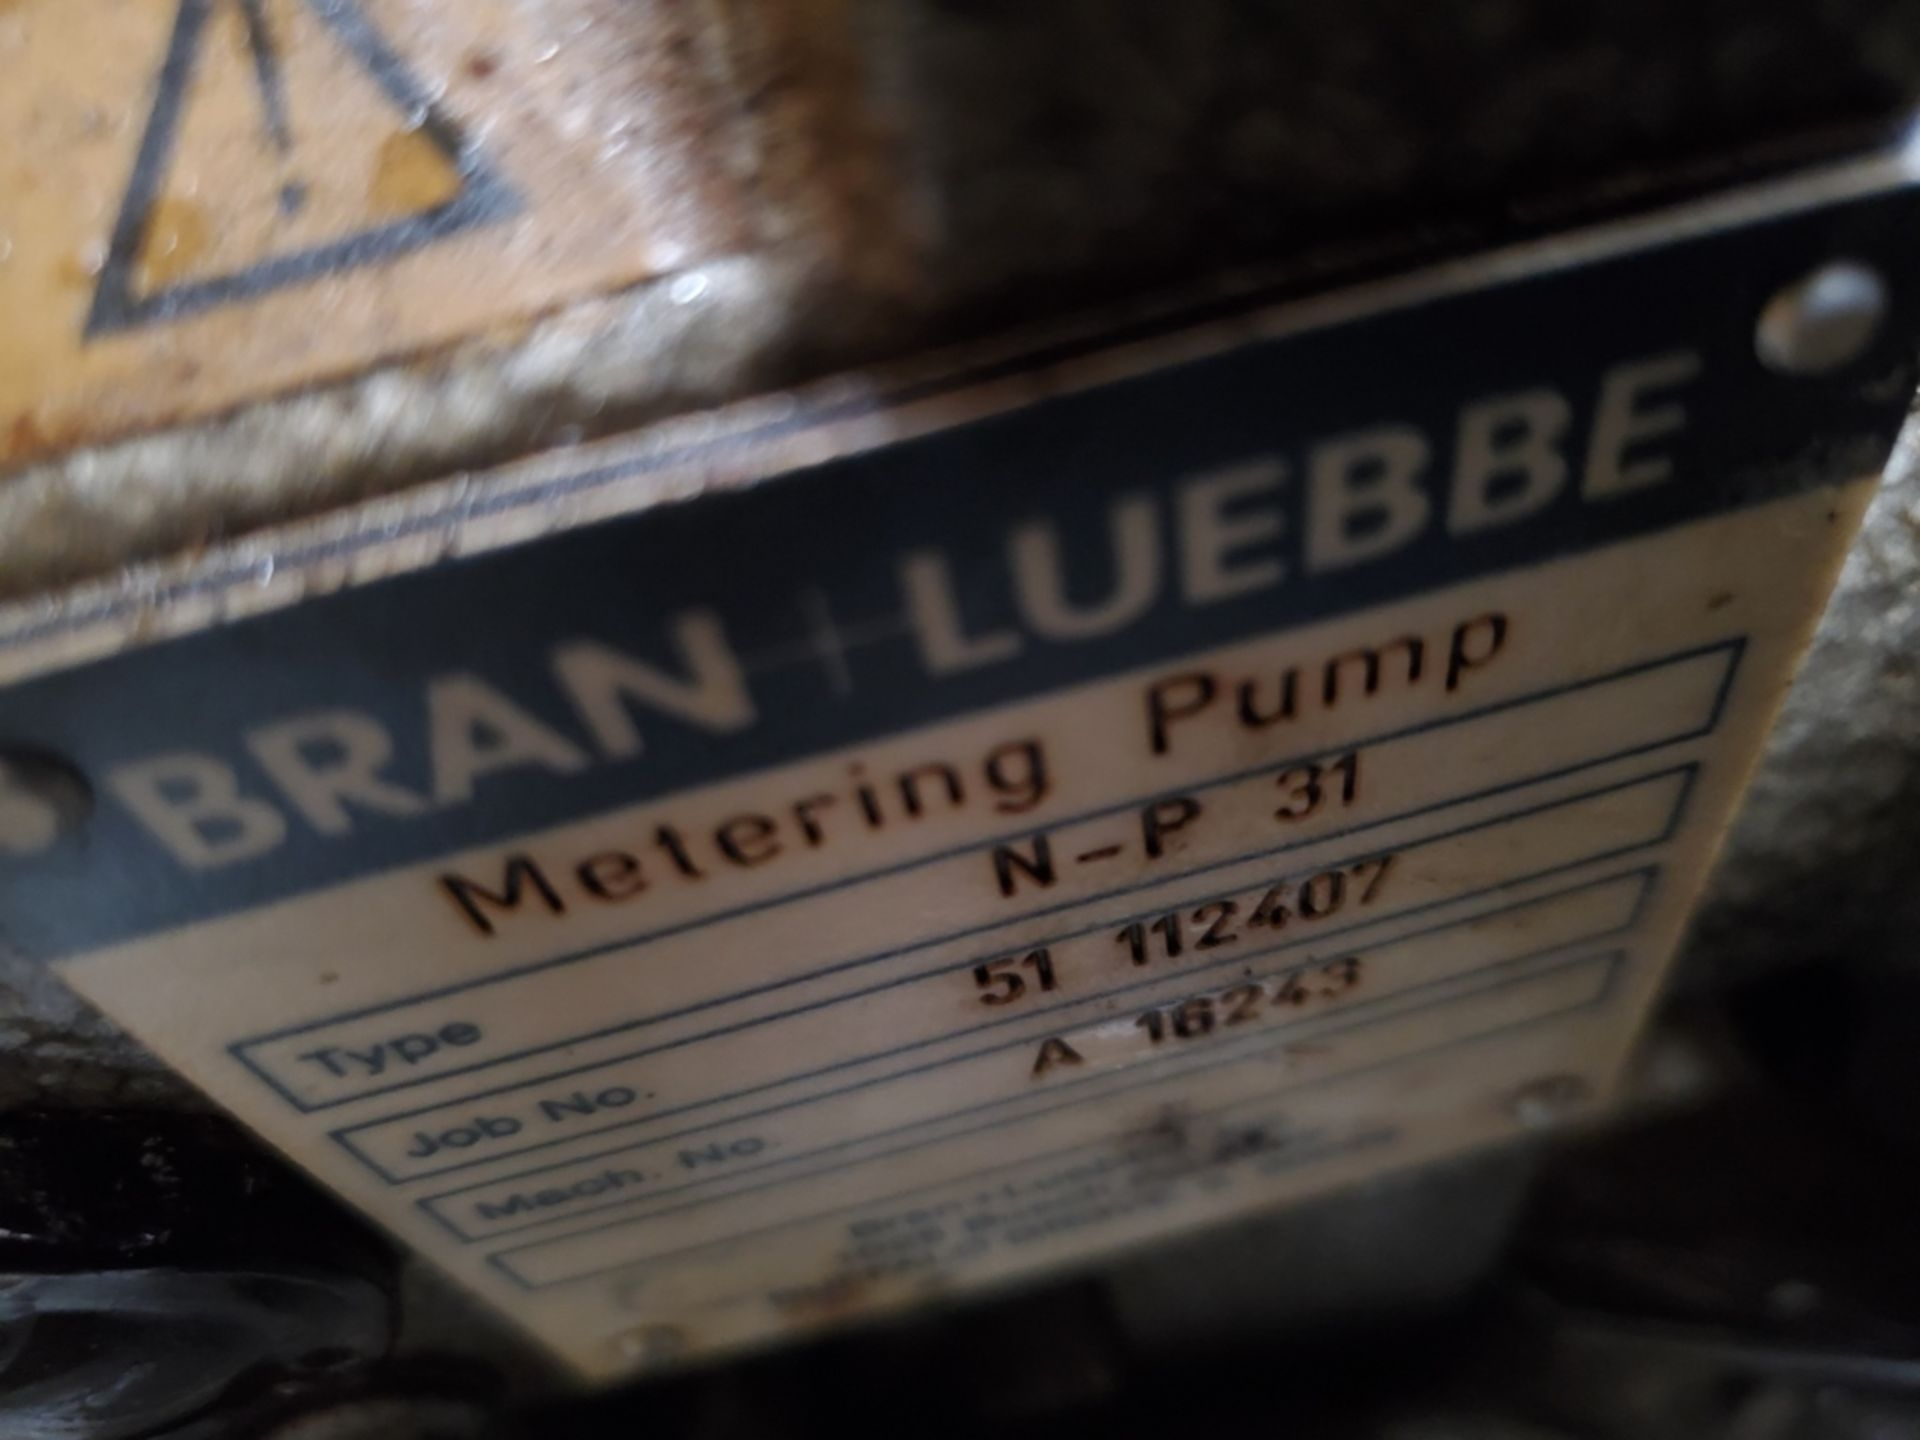 Bran Luebbe Model N-P 31 Metering Pump - Image 5 of 6